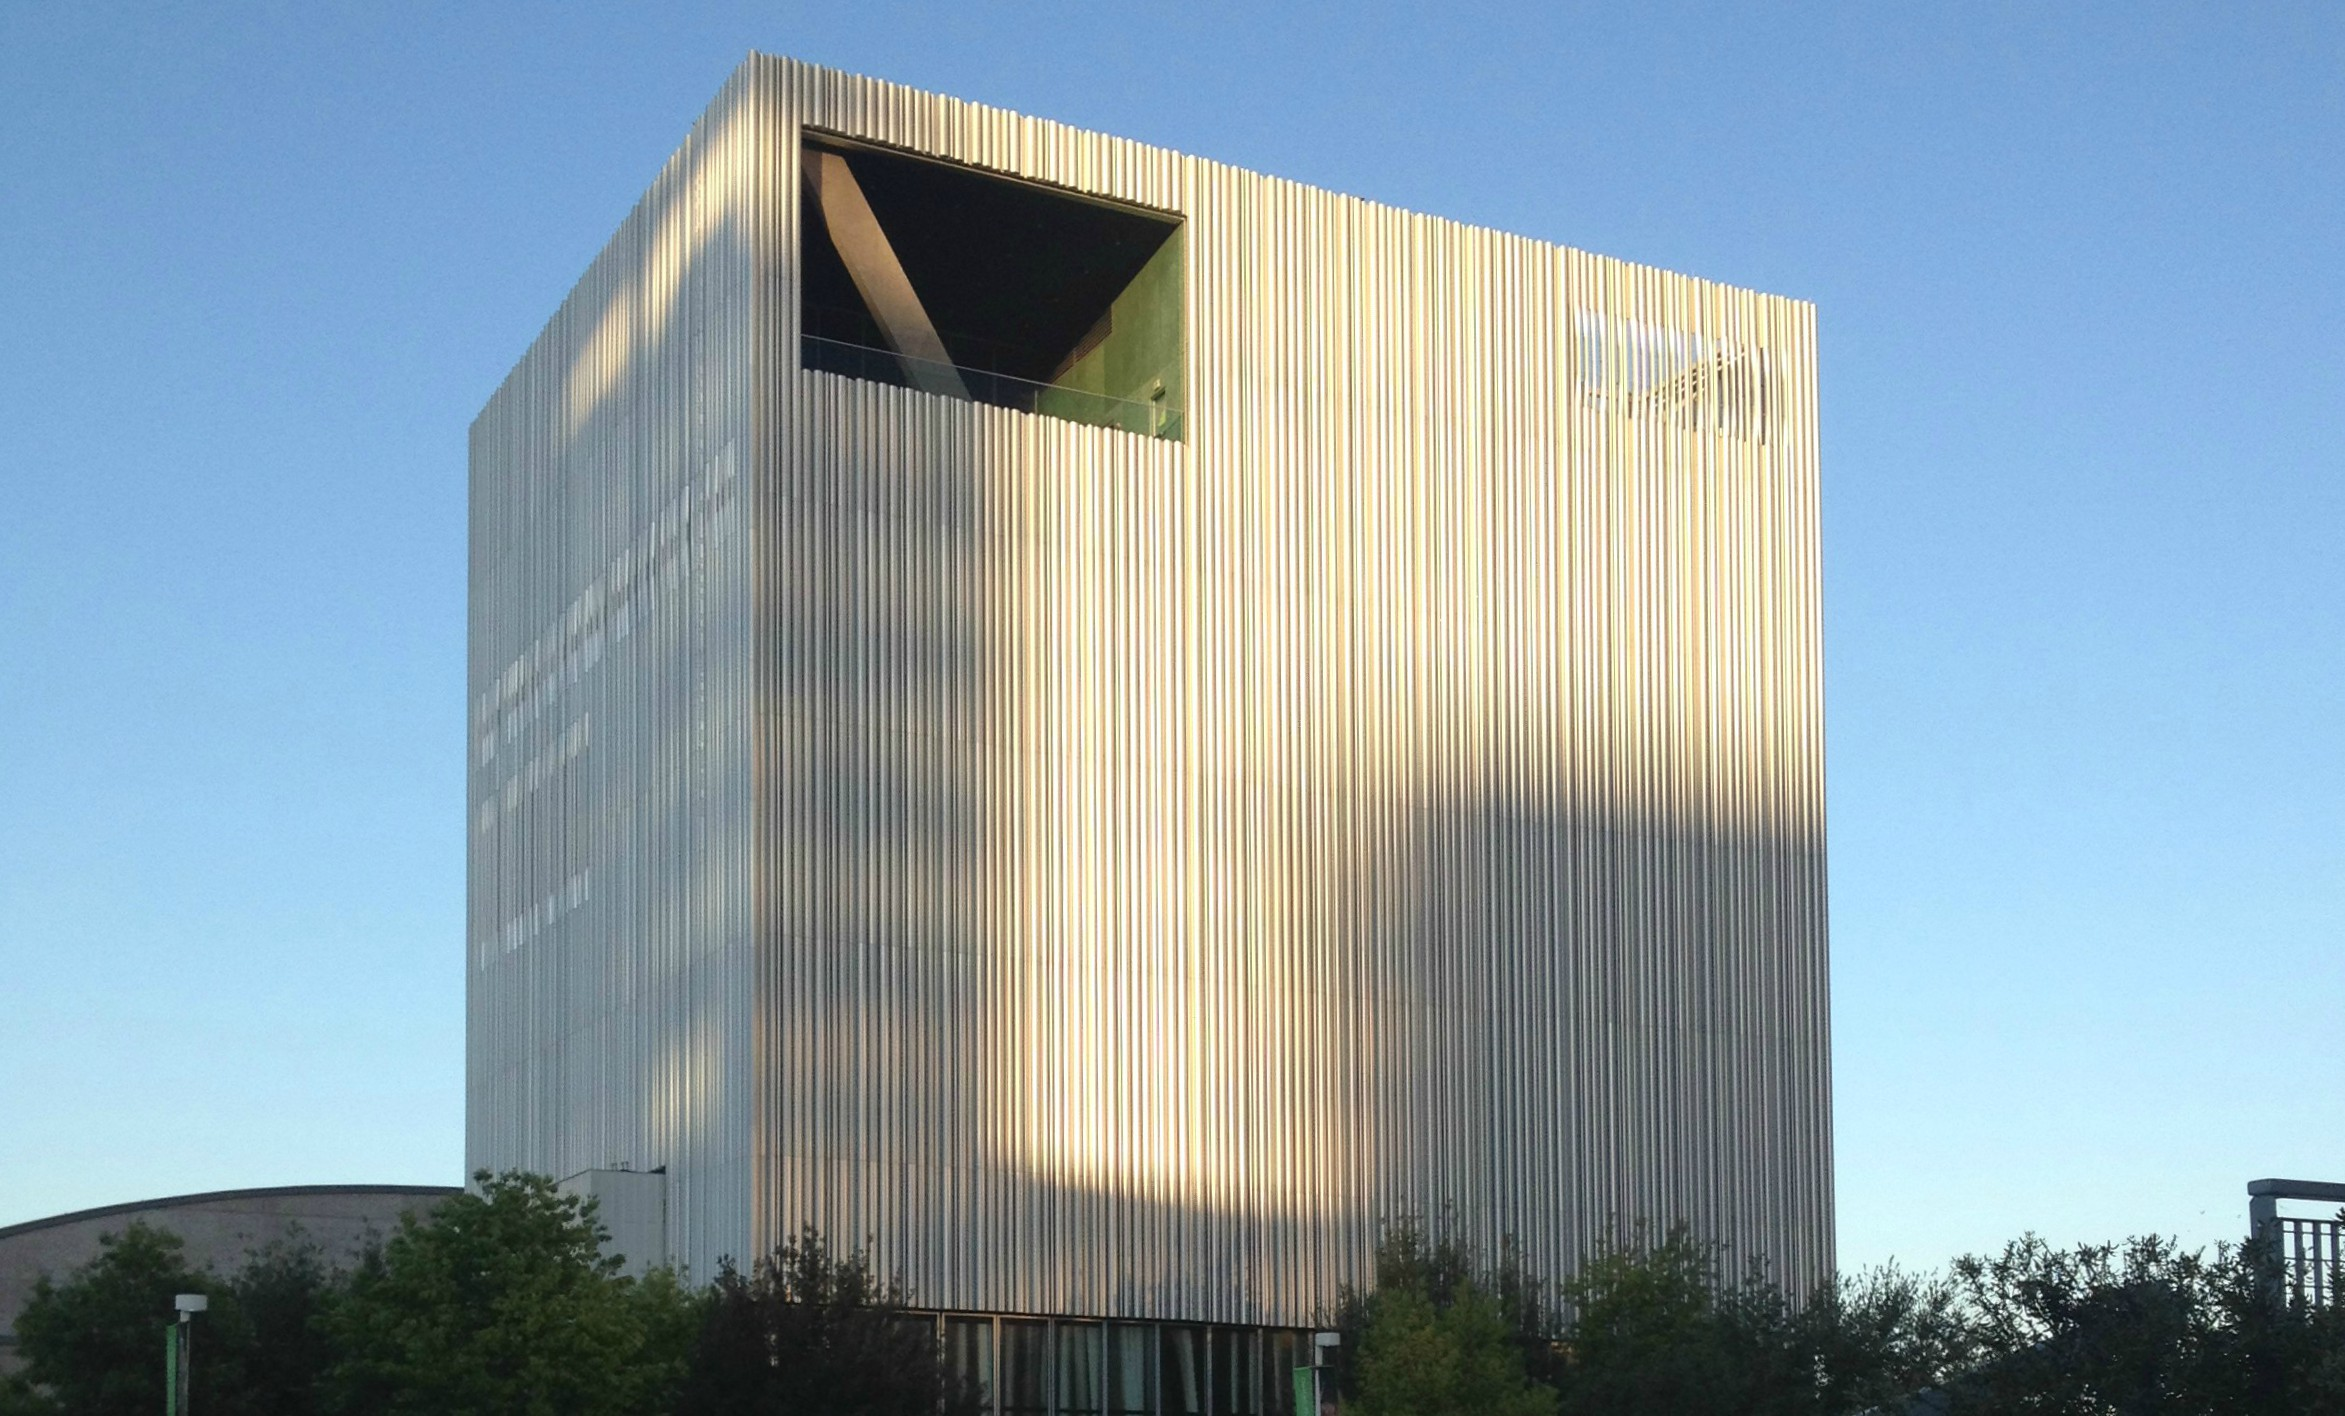 The Wyly Theatre, designed by Rem Koolhaas and Joshua Prince-Ramos. Photo: Jerome Weeks